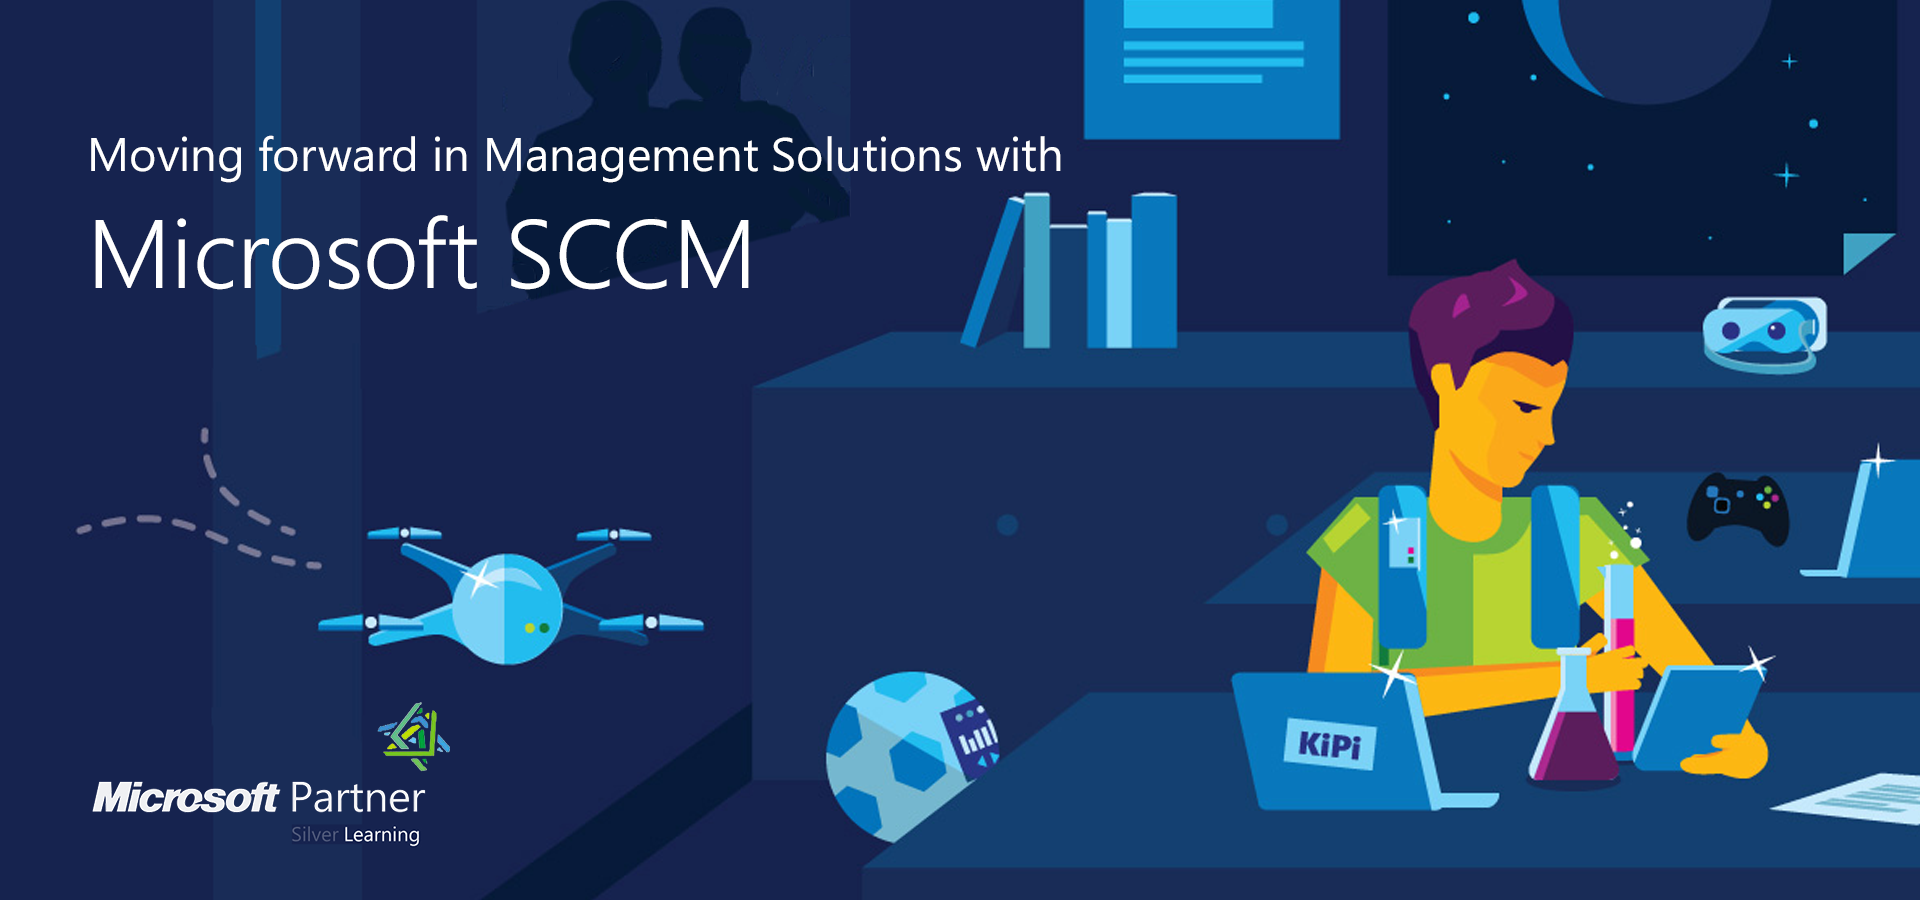 Sccm 2012 Best Features And Mcts Sccm 2012 Certification Roadmap